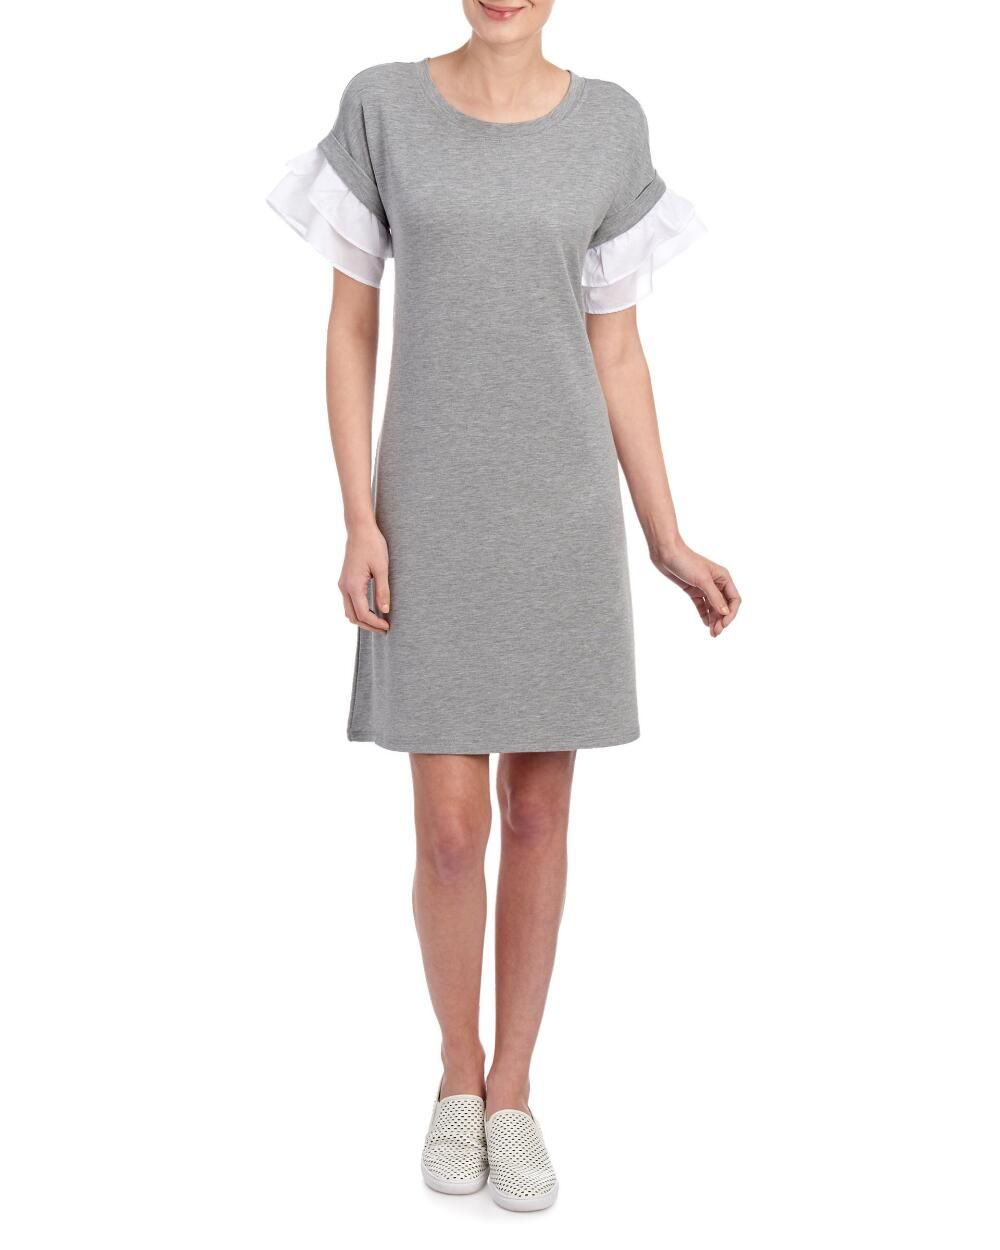 French Terry Ruffled Sleeve Shift Dress Day Casual Shop By Occasion Dresses Stein Mart Clothes Shift Dress Dresses For Work [ 1250 x 1000 Pixel ]